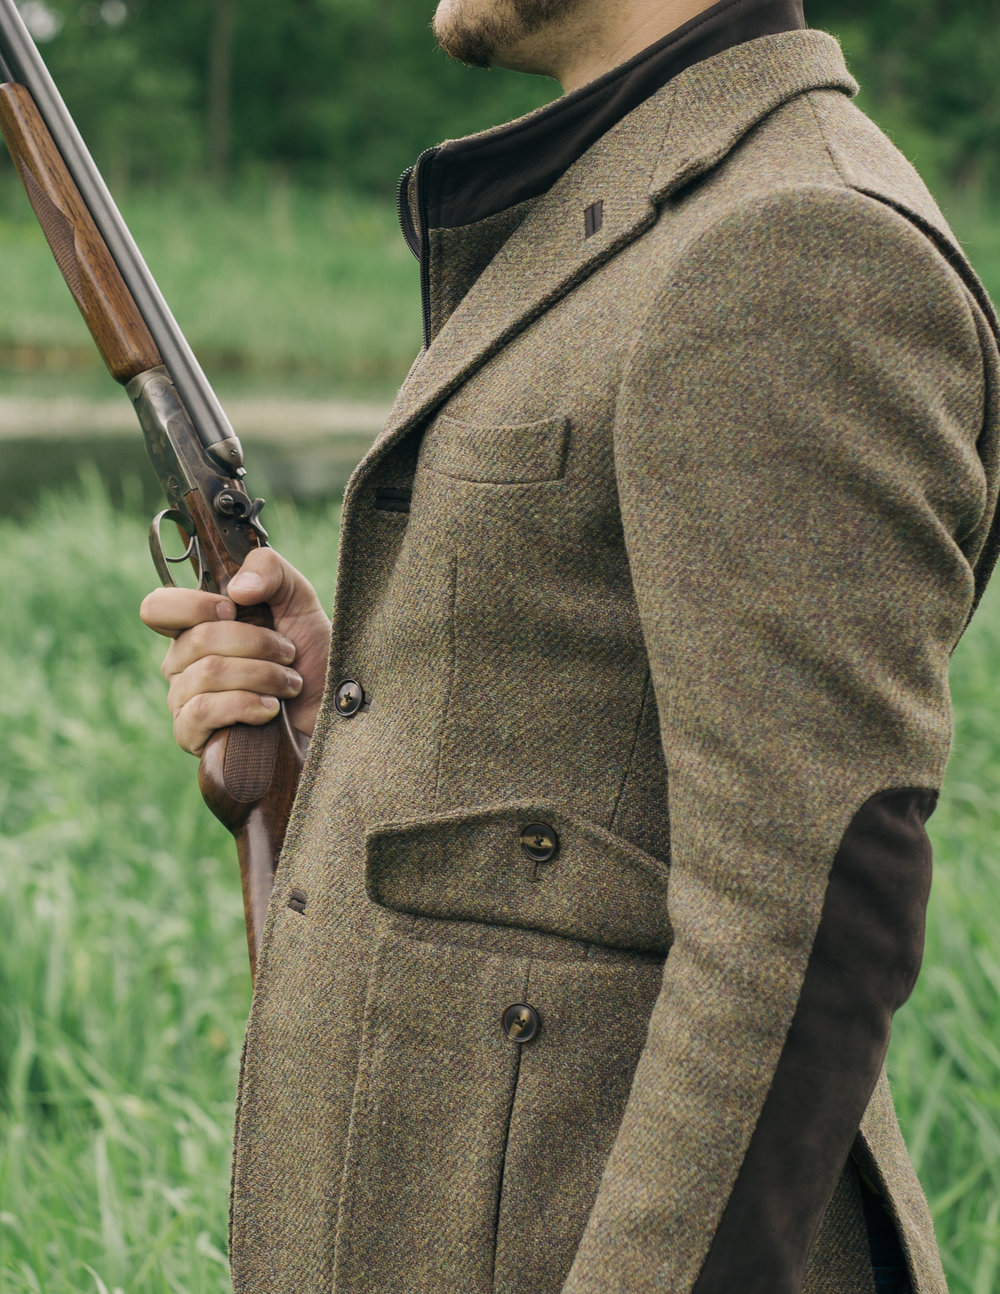 custom donegal tweed shooting jacket